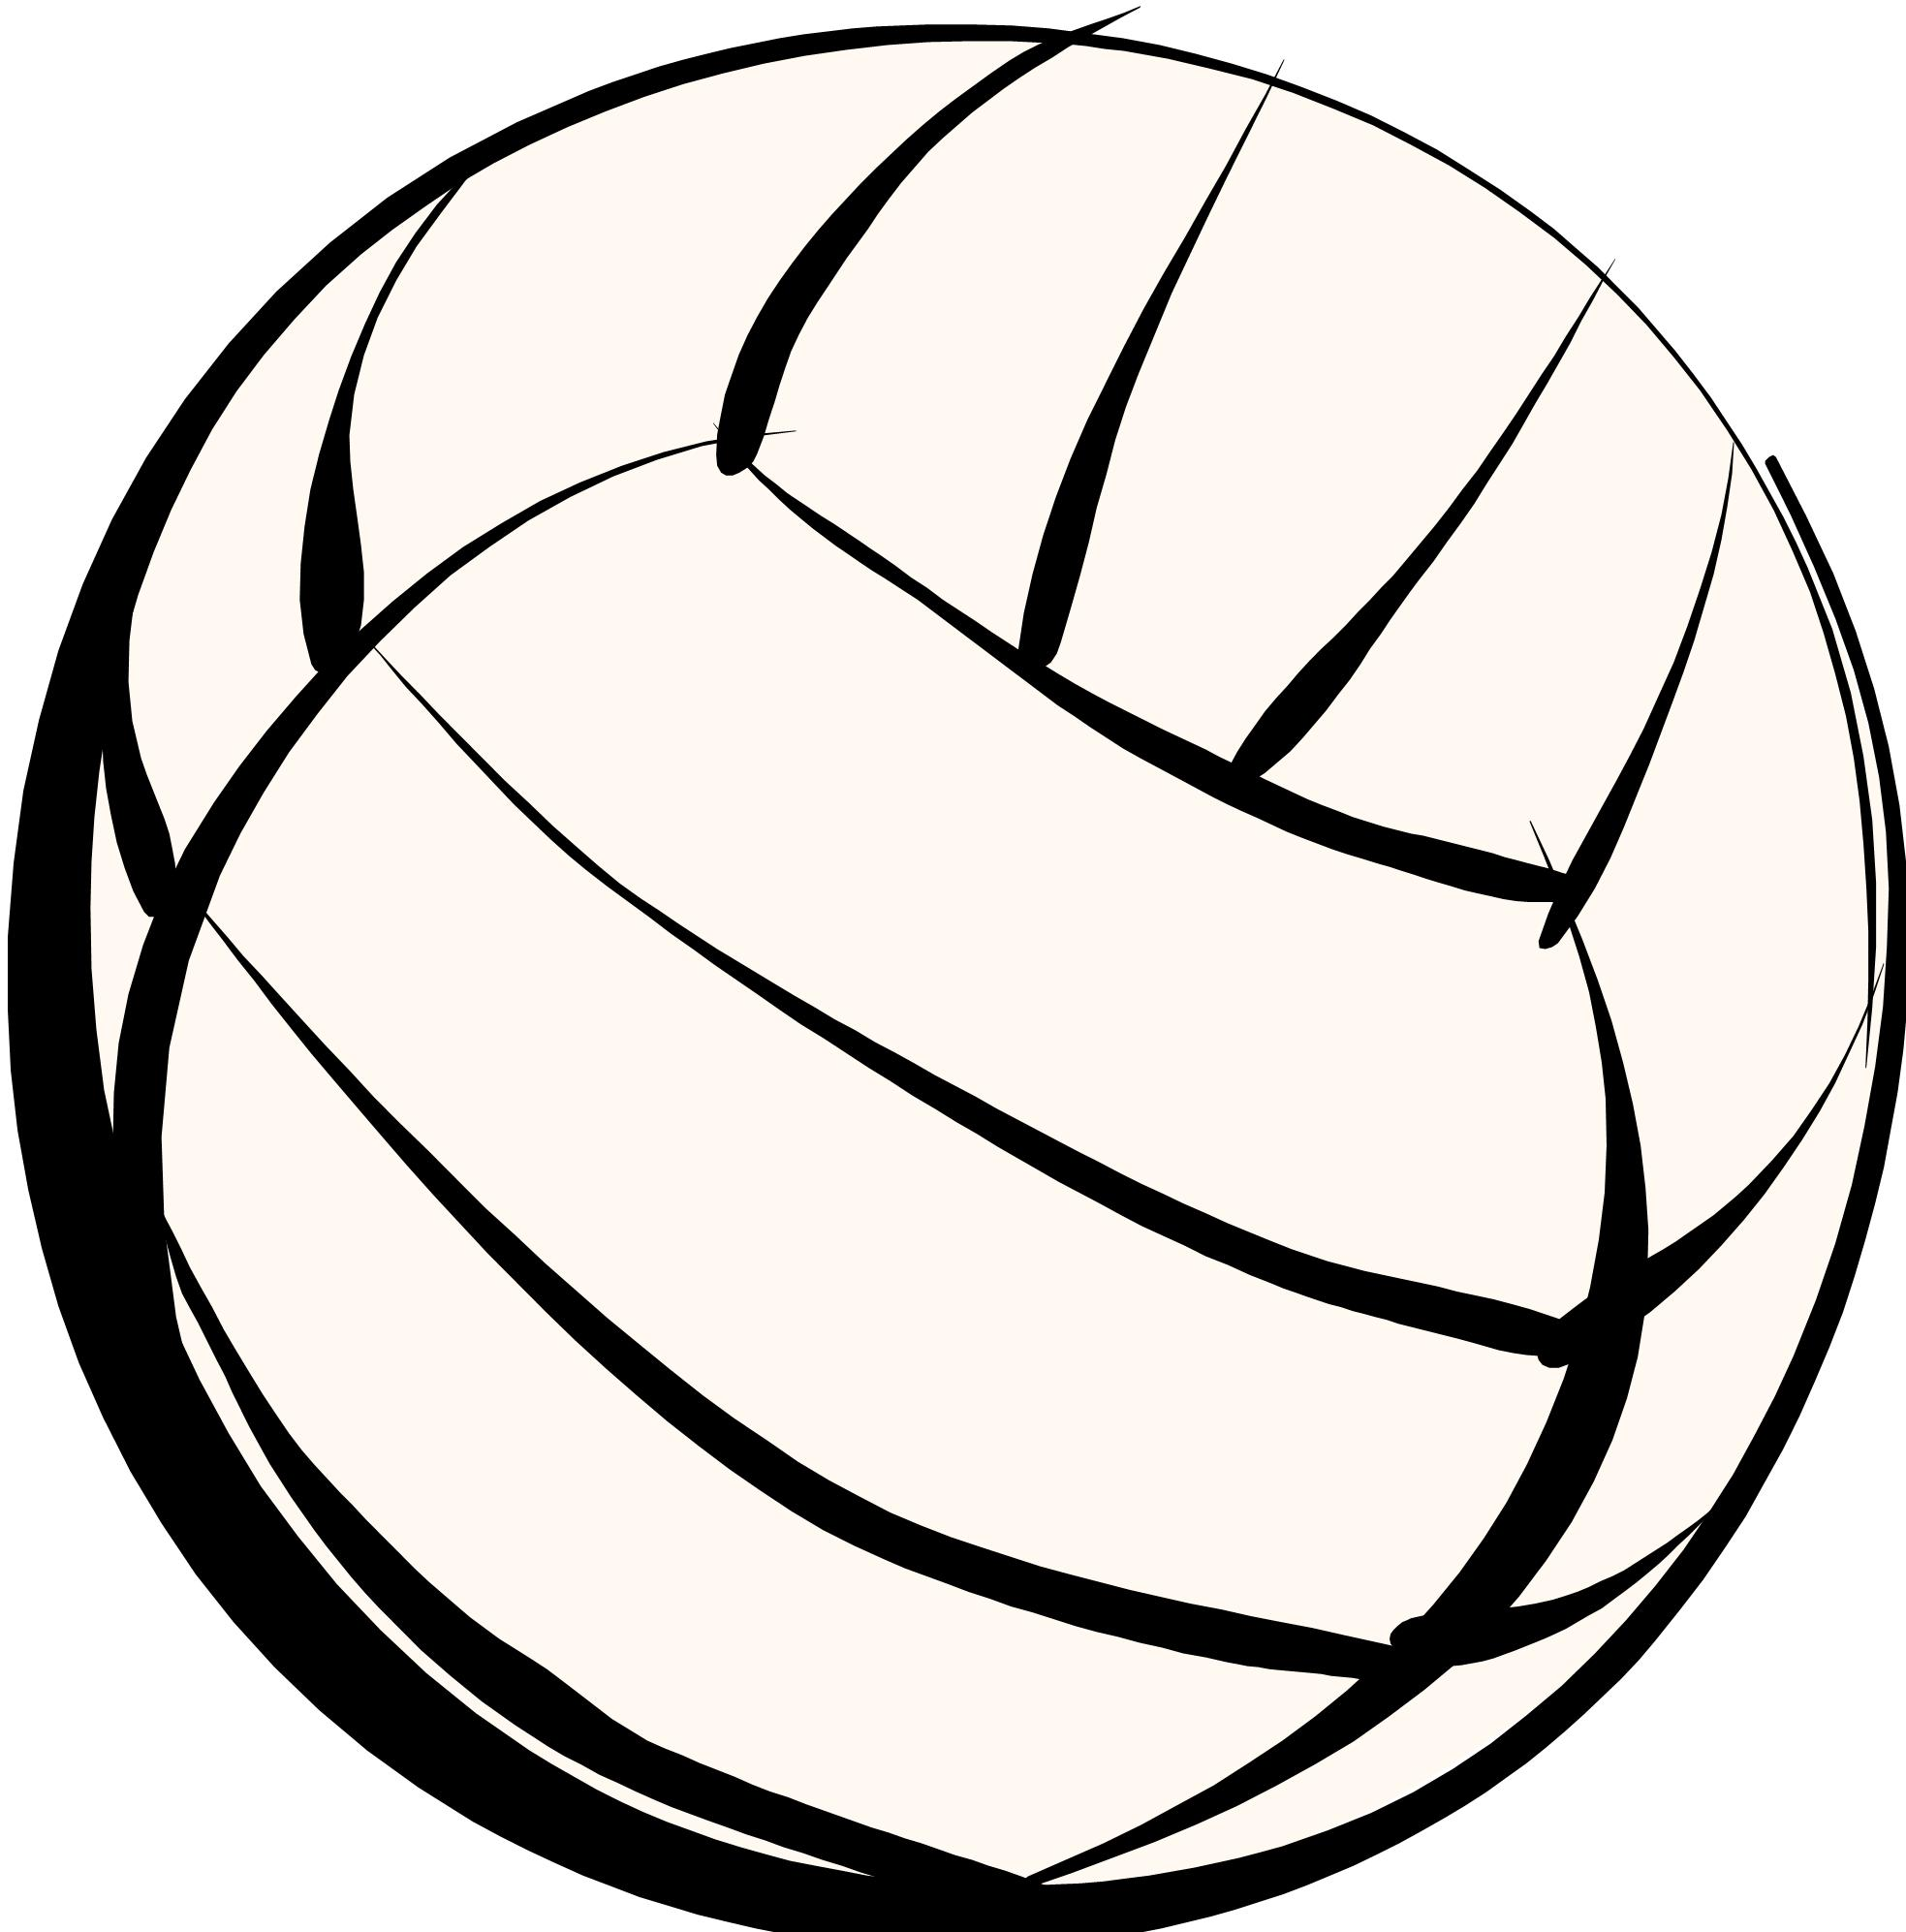 Volleyball Free Images At Clker